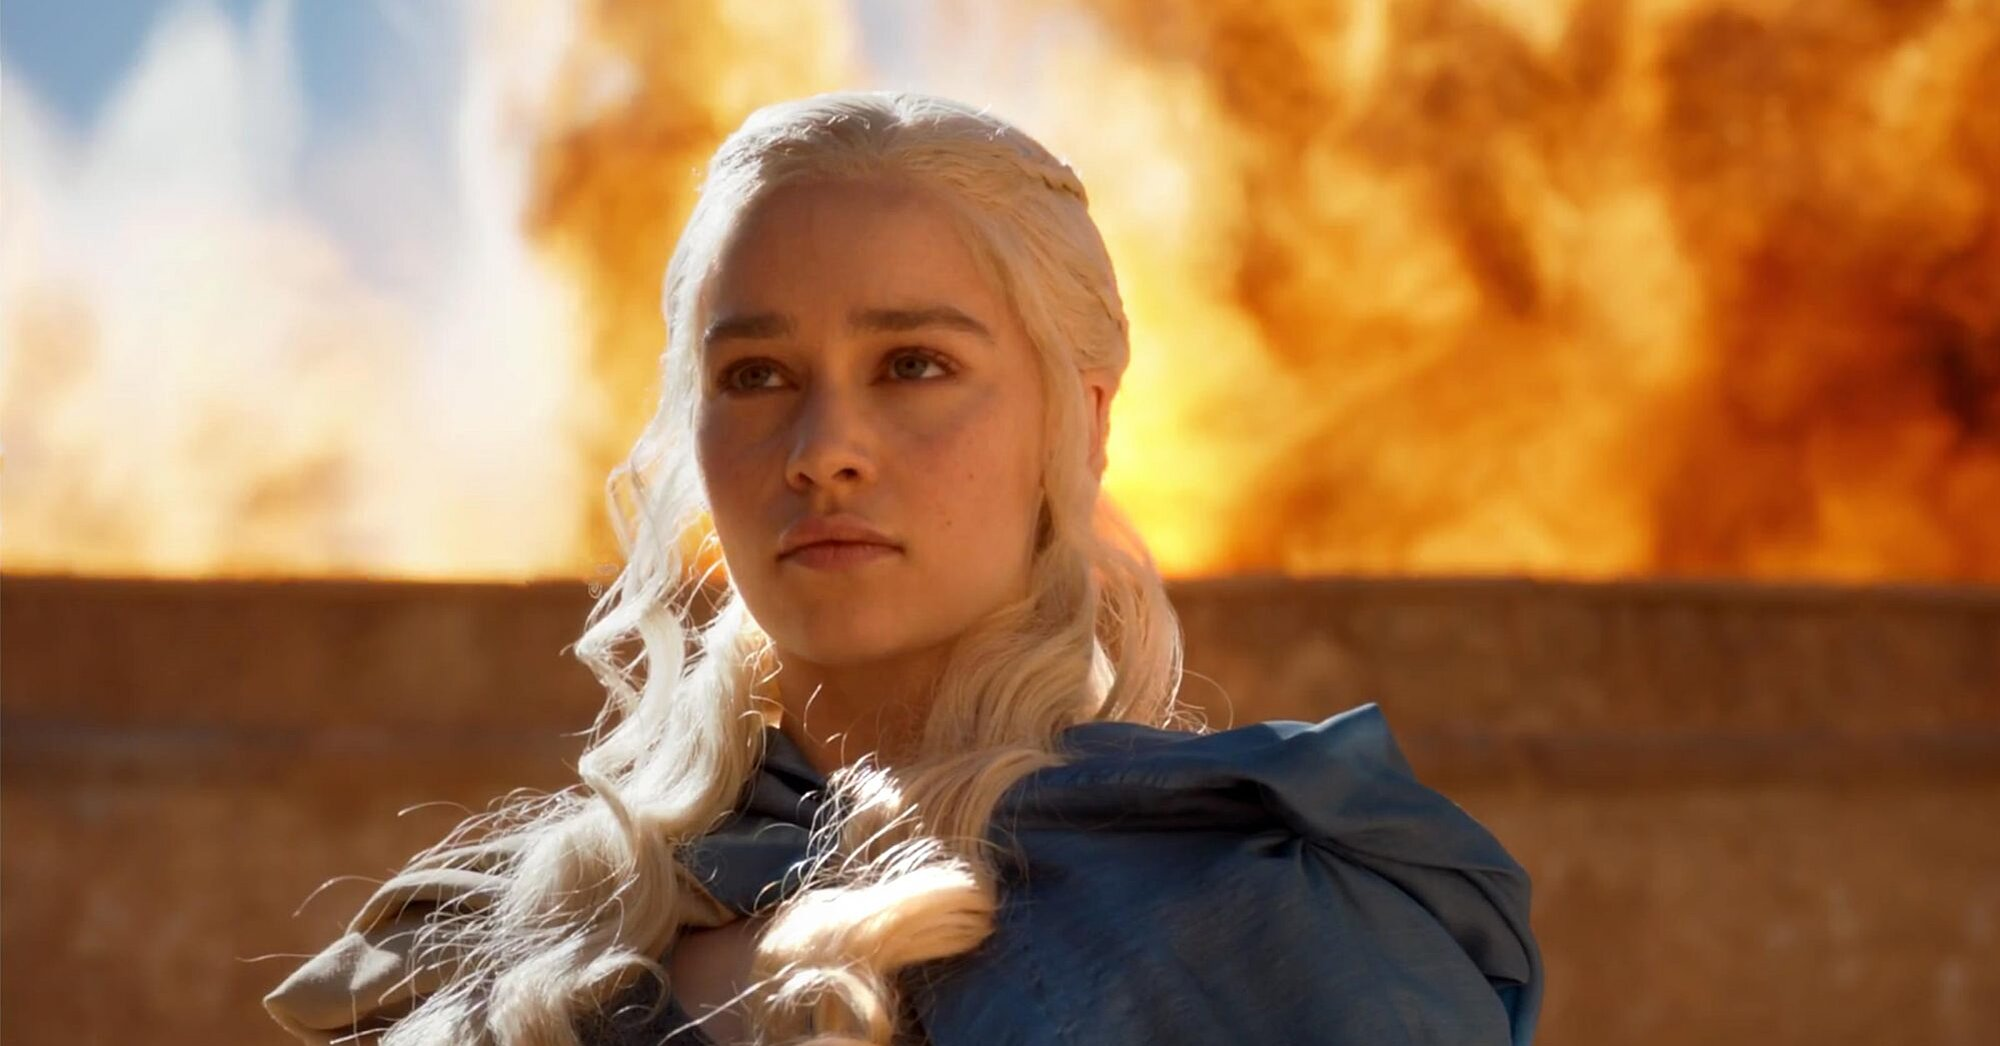 Emilia Clarke improvised an entire monologue on 'Game of Thrones' (and nobody ever noticed)